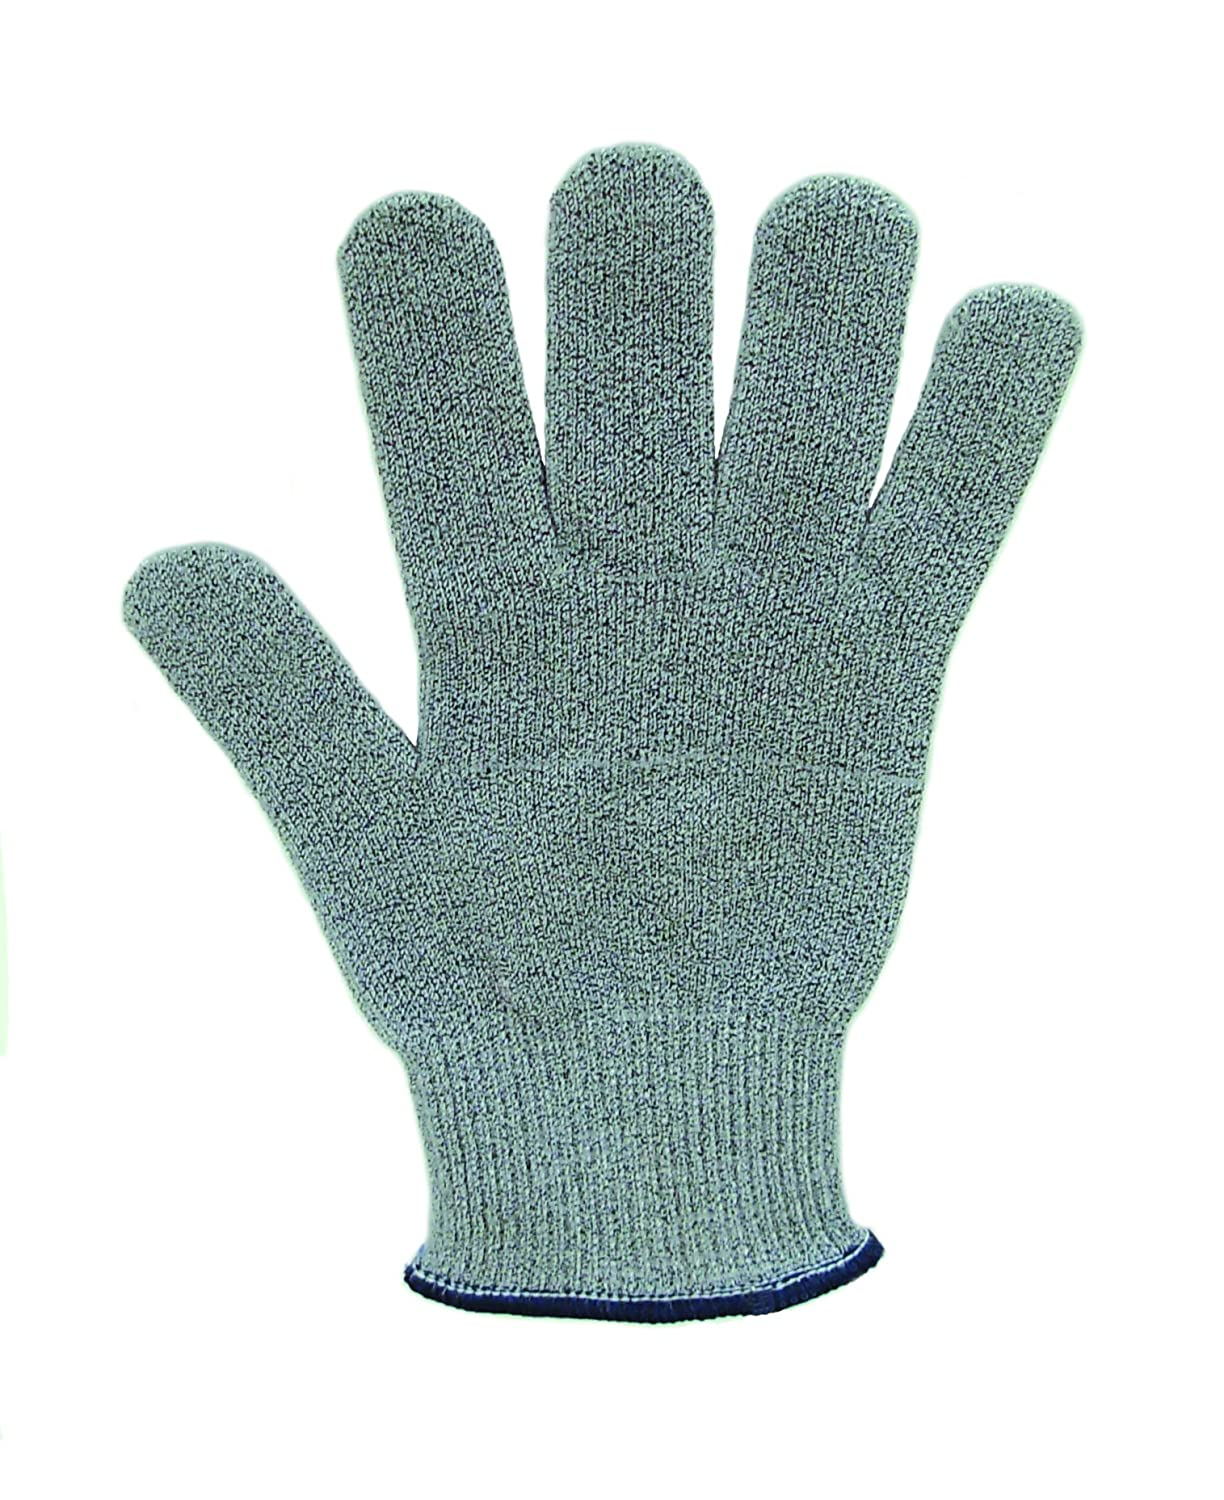 Amazon.com: Microplane Cut Resistant Glove Keep Hands Safe in the ...